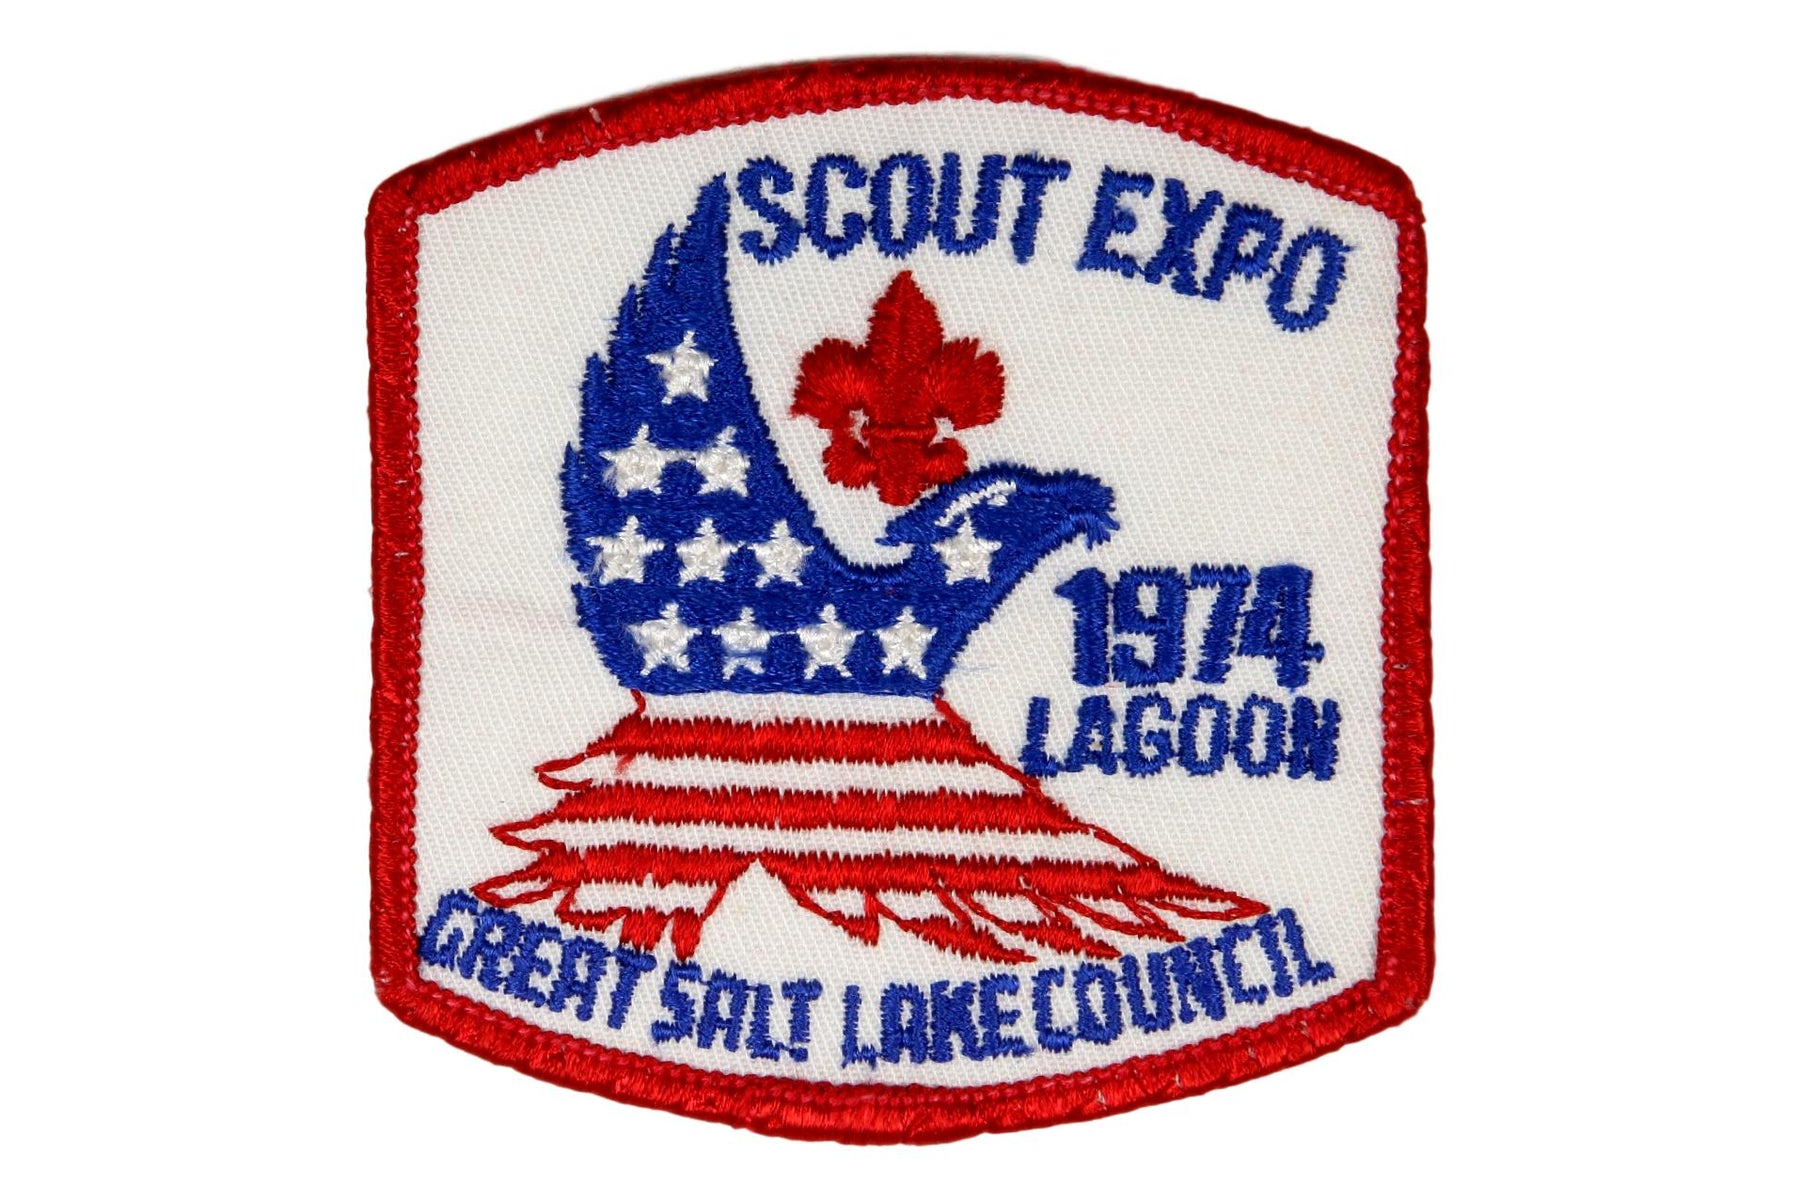 1974 Great Salt Lake Scout Expo Patch White